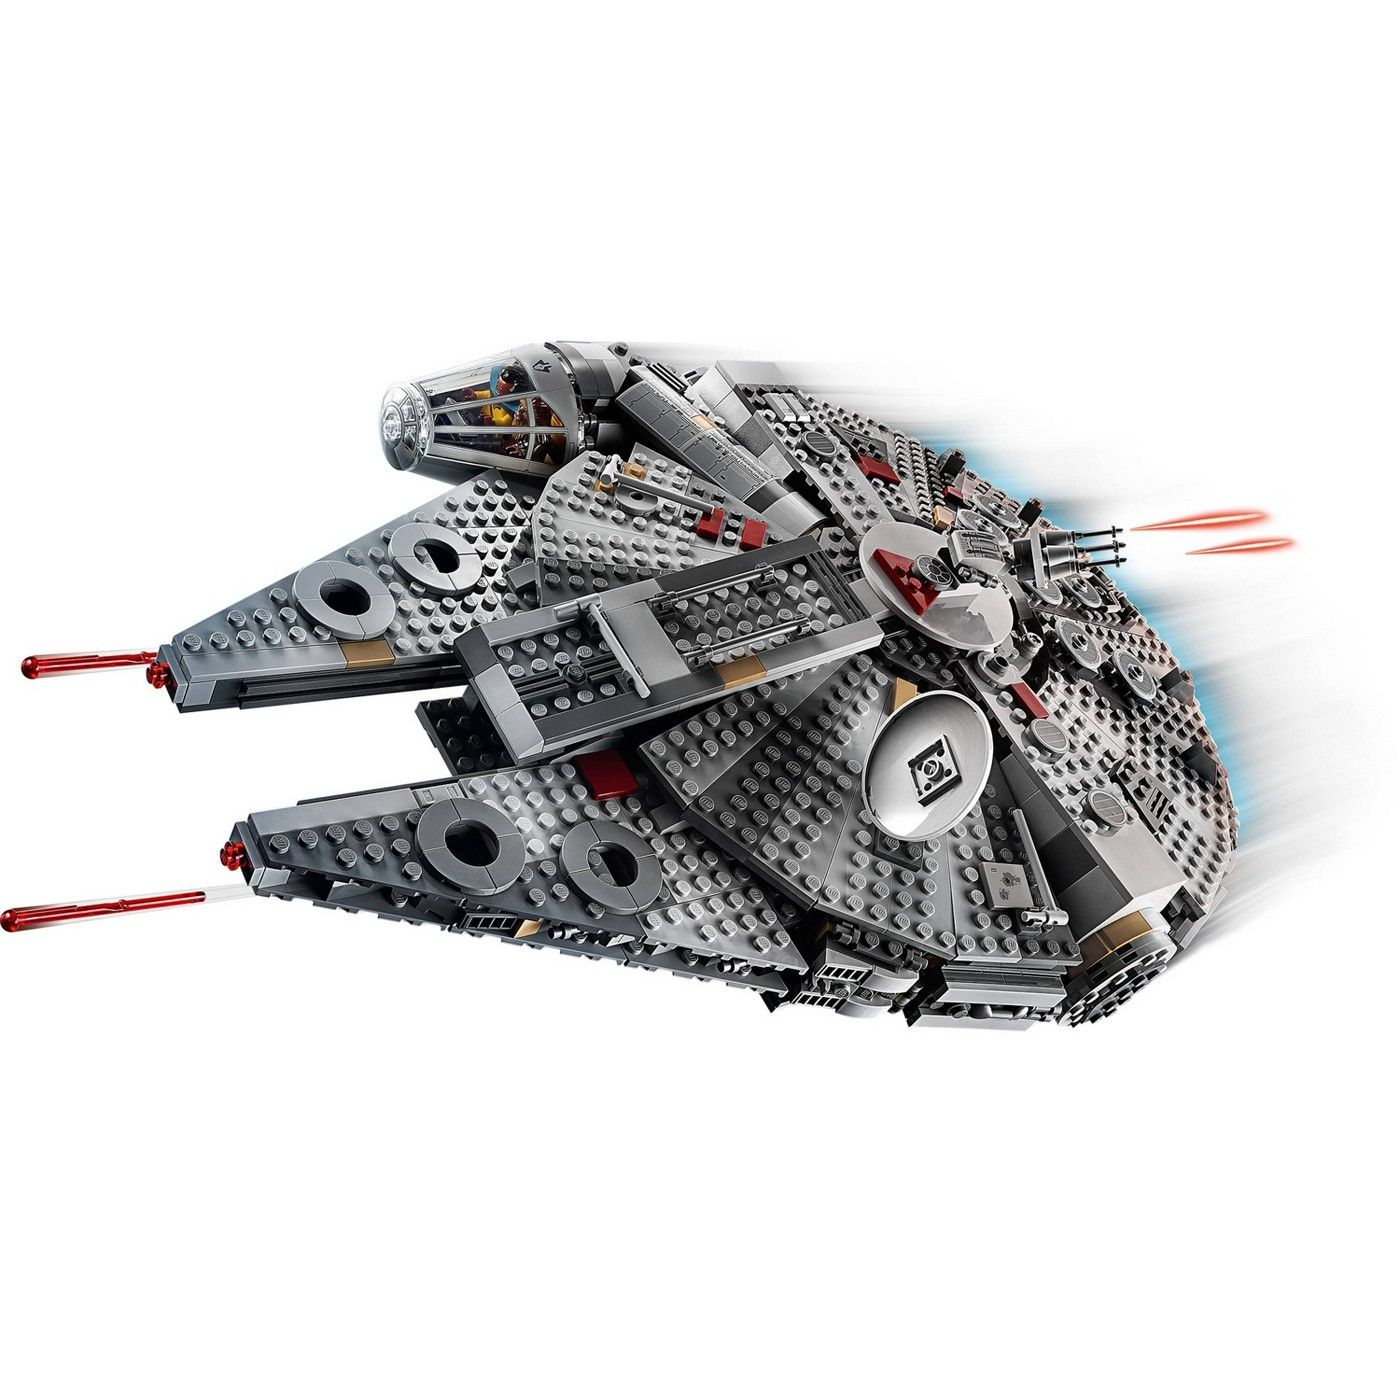 Lego Star Wars The Rise Of Skywalker Millennium Falcon Building Kit Starship Model With Minifigures 75257 Affiliate Ri Lego Star Wars Mini Figures Lego Star